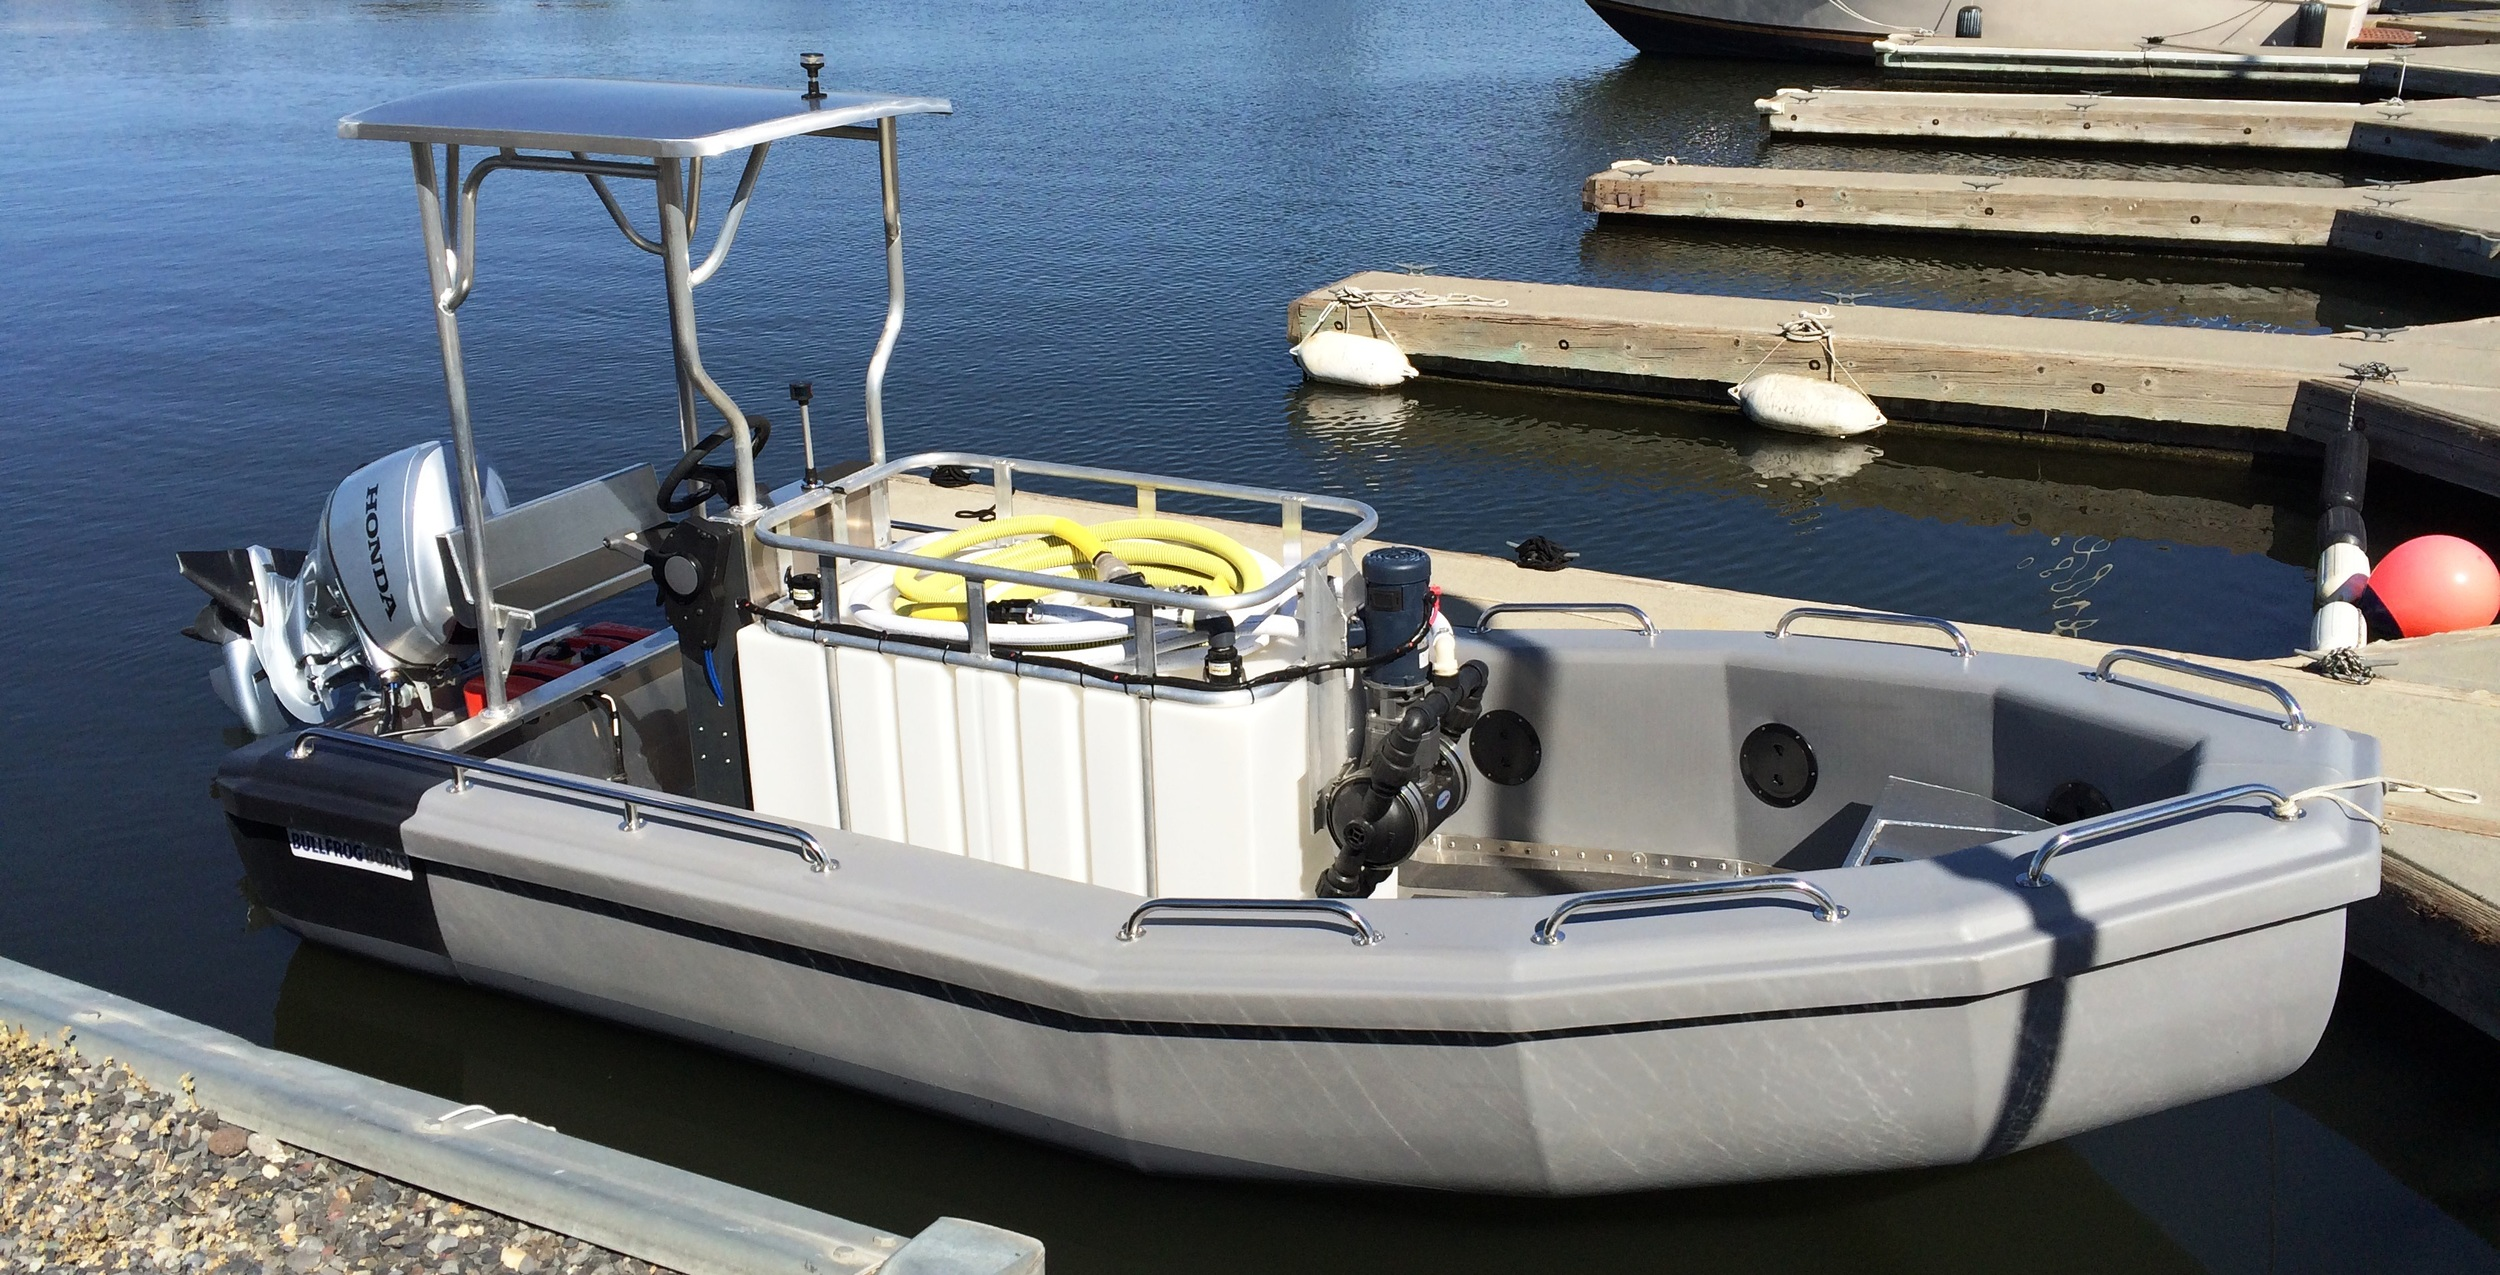 Ice Harbor Marina Takes Delivery of their New Bullfrog Pump Out Boat just in time for Memorial Day Weekend.